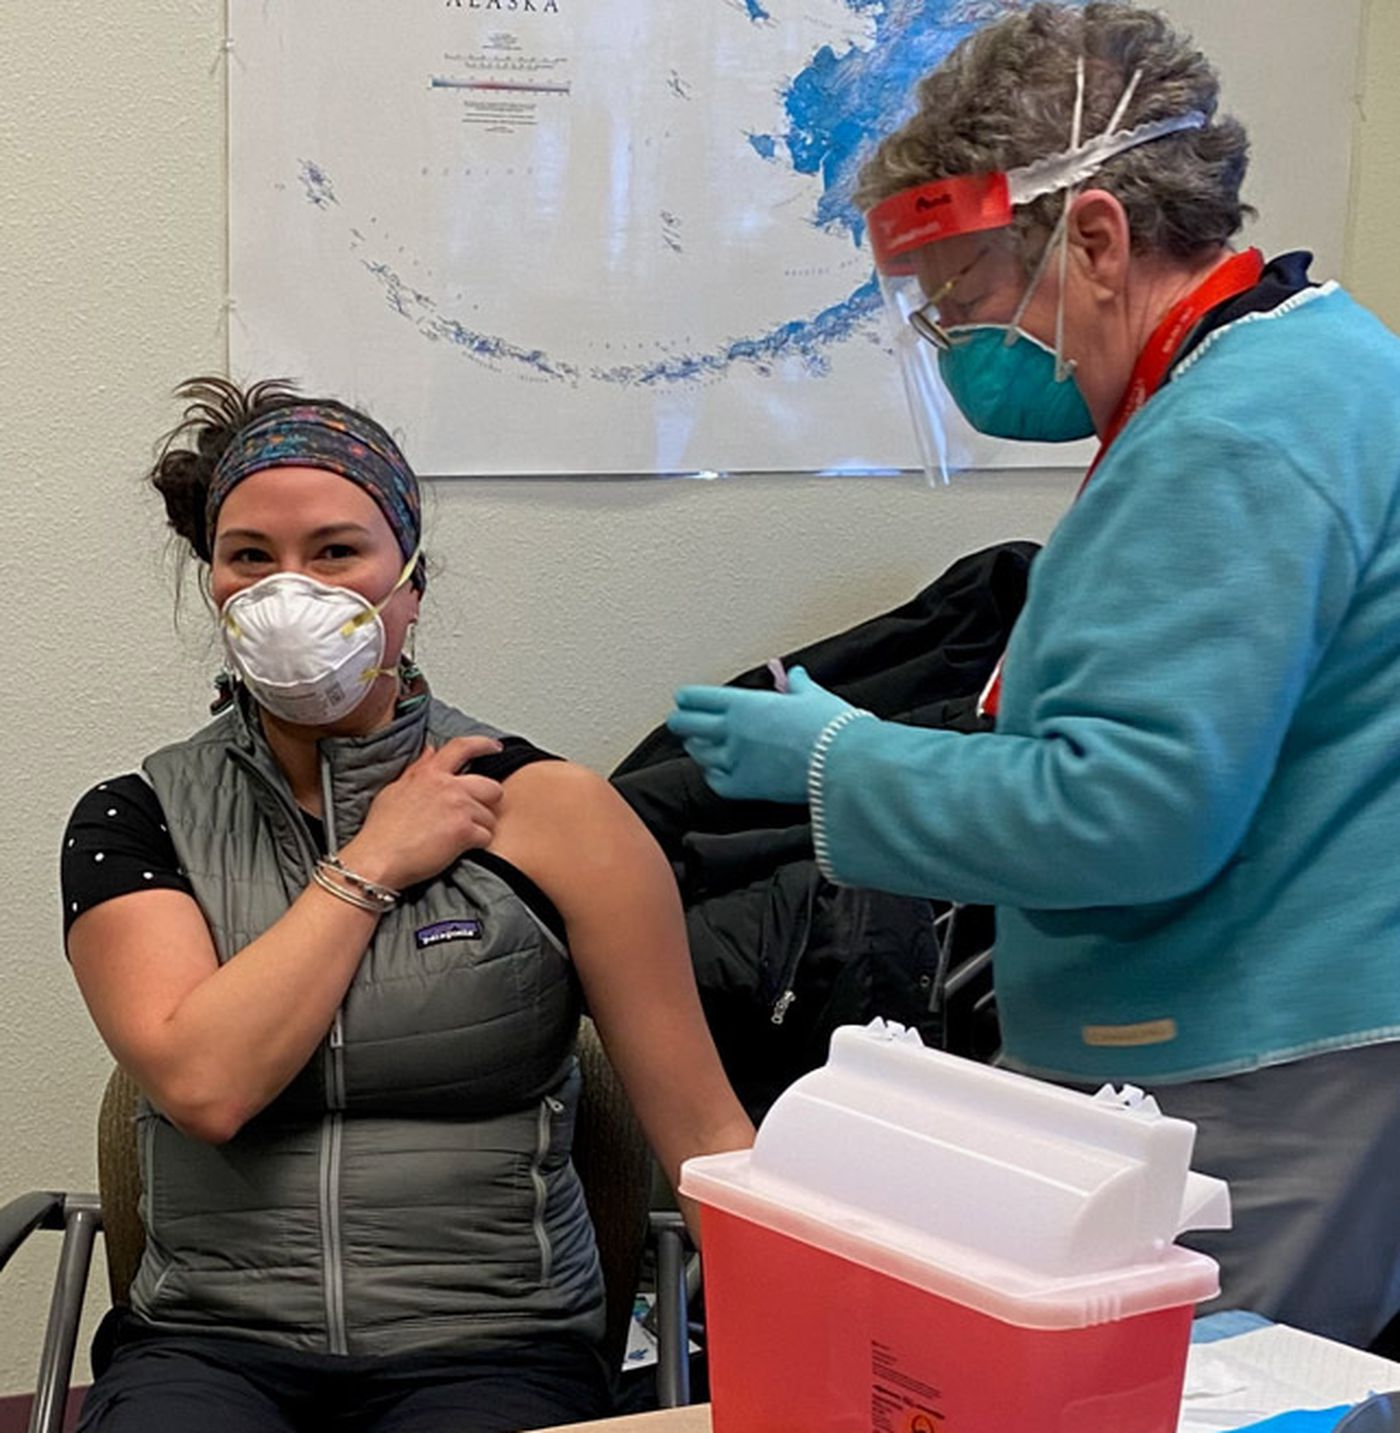 Tanya Salmon, a Southcentral Foundation community health aide in Igiugig, gets vaccinated against COVID-19 in Iliamna on Tuesday, Jan. 5, 2021. (Southcentral Foundation photo)